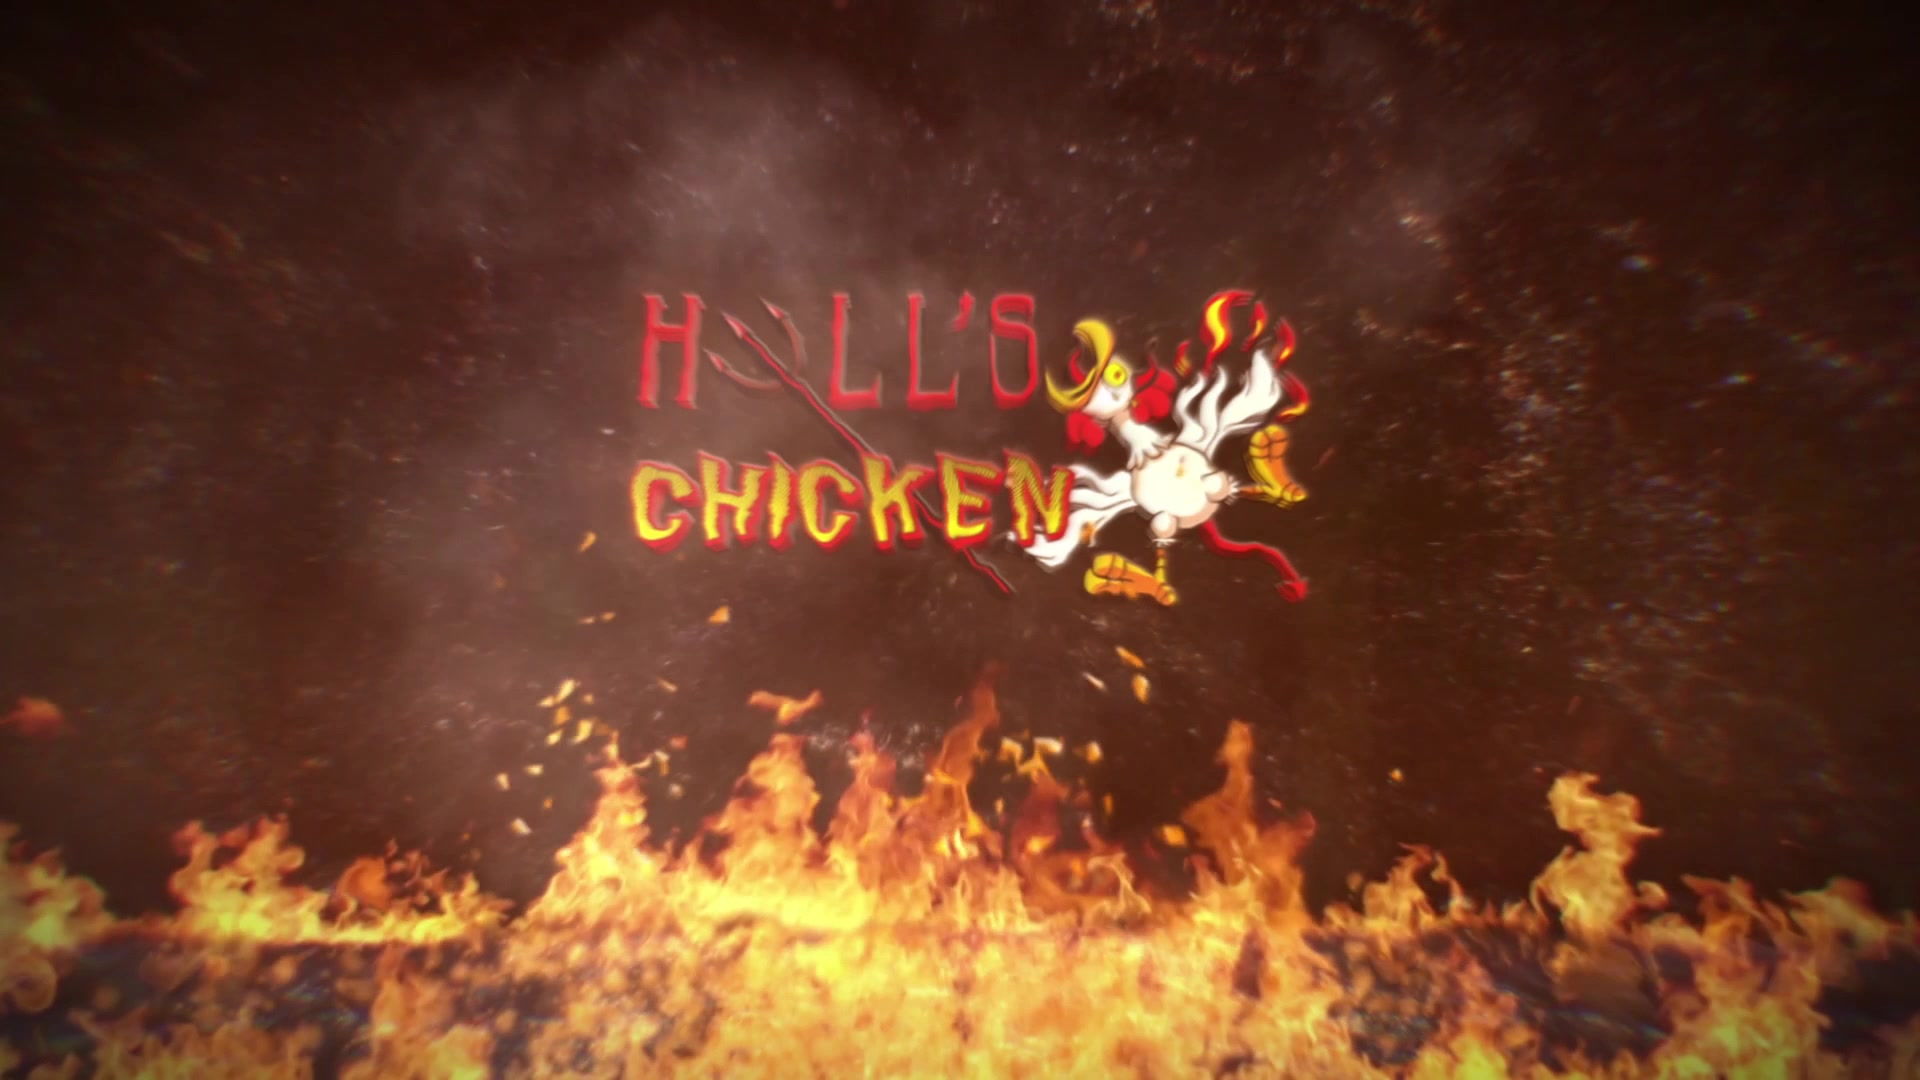 Hell's Chicken background